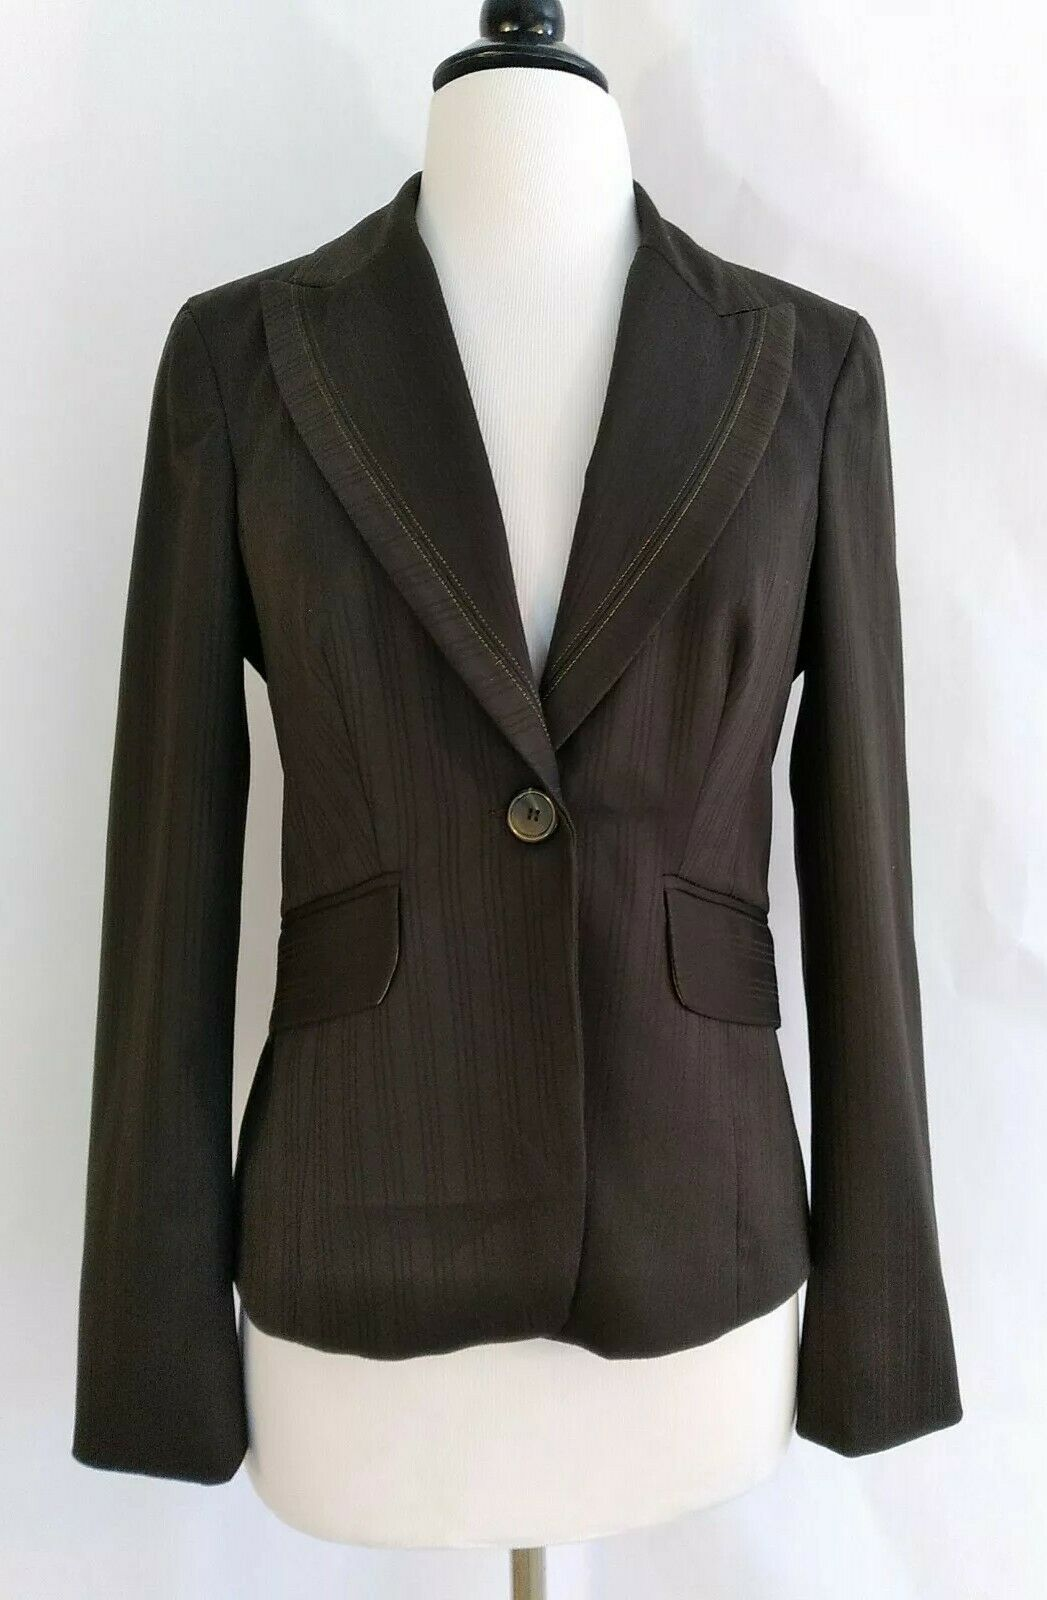 Bebe 8 brown Career Jacket Blazer Lined long sleeve gold metallic accent used